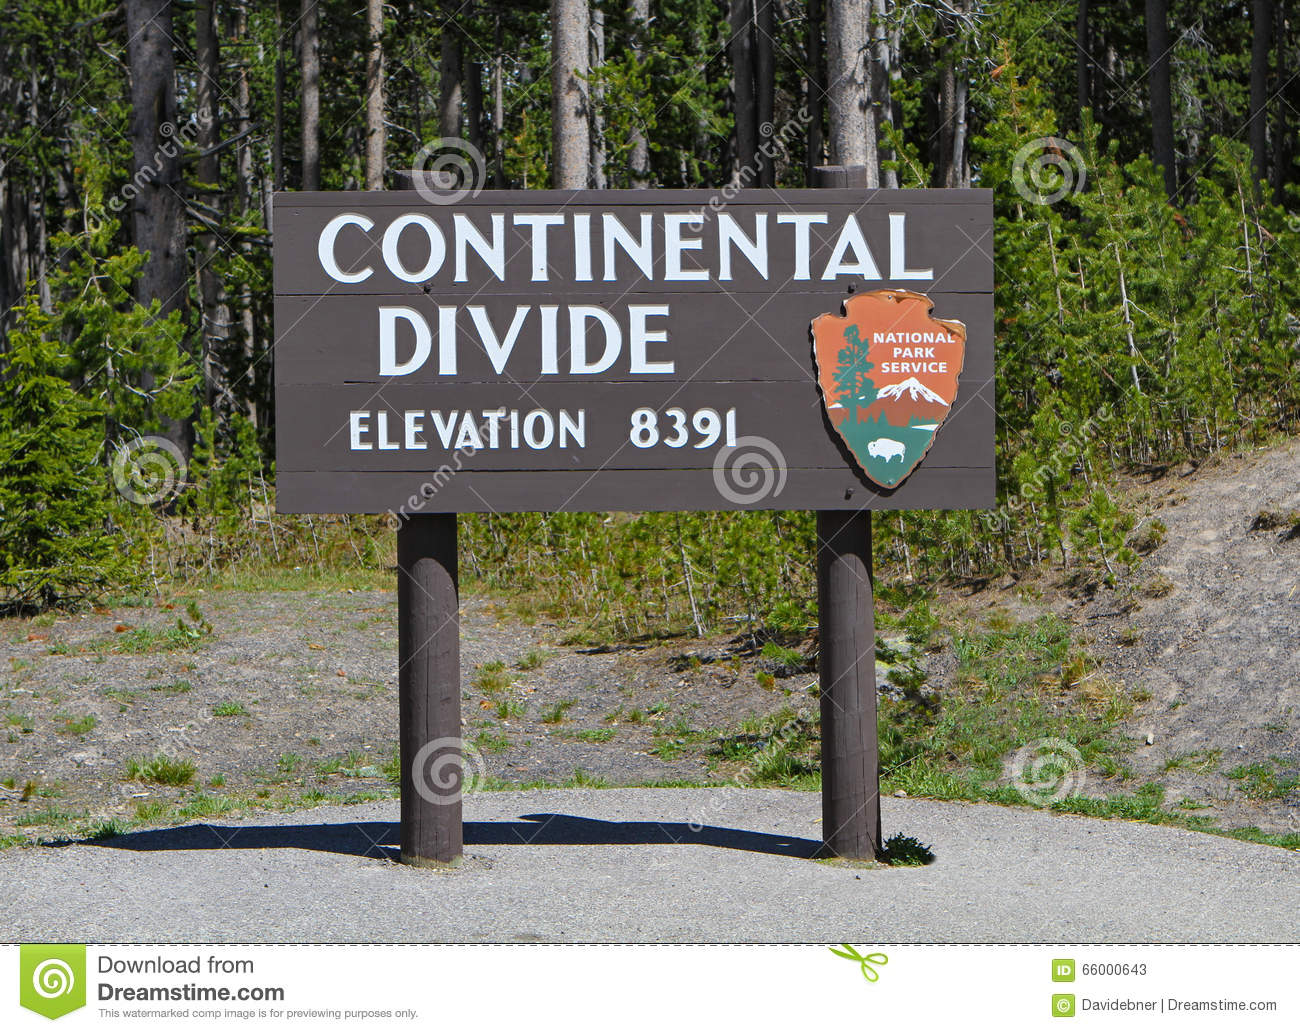 continental divide jewish dating site Browse online personals in continental divide continental divide best dating app continental divide jewish singles continental divide.